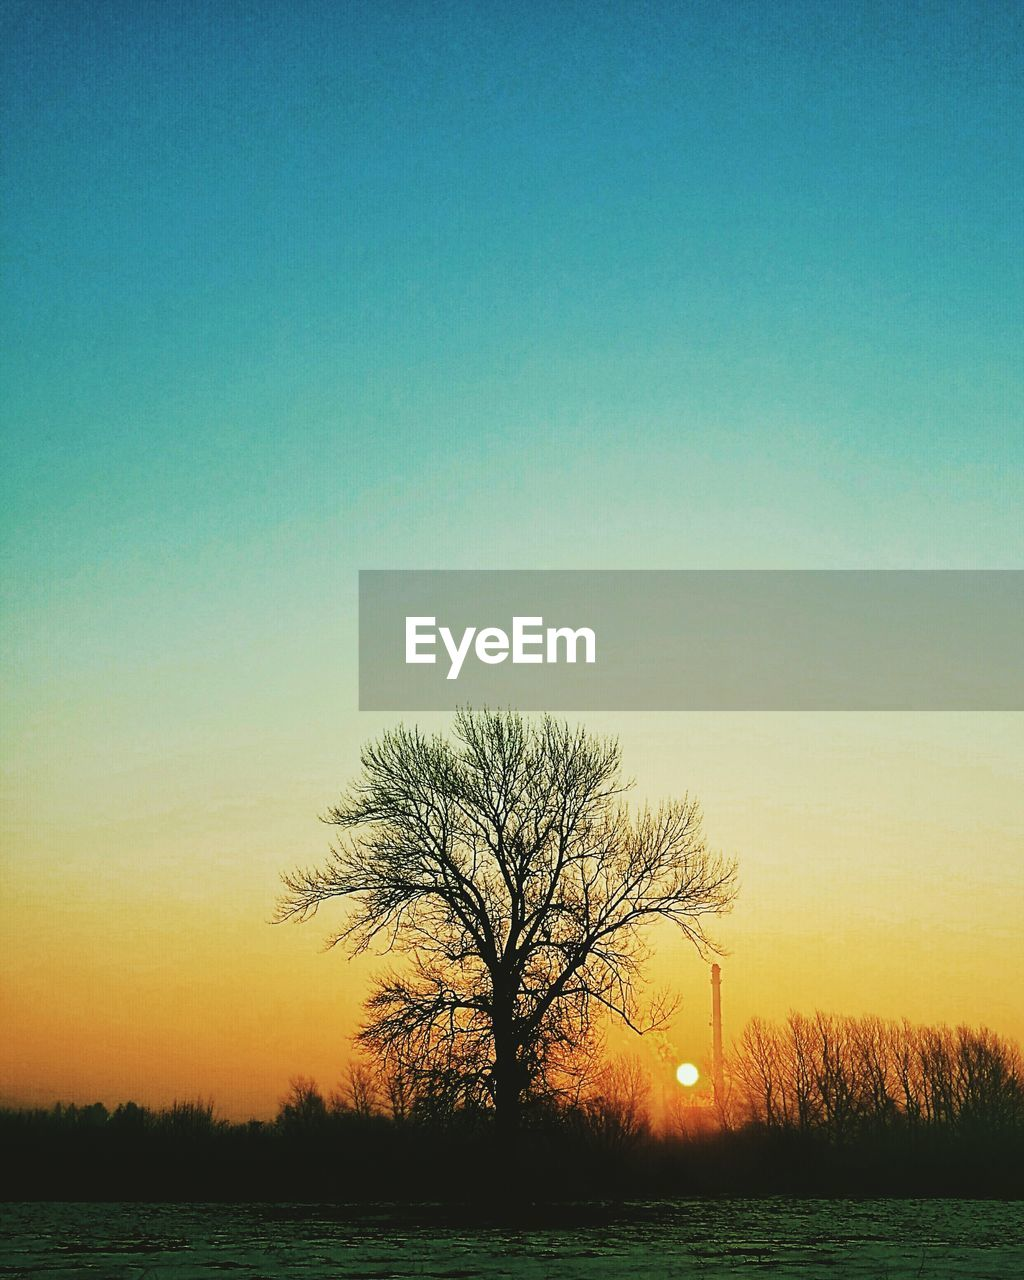 bare tree, tree, sunset, tranquility, beauty in nature, tranquil scene, scenics, nature, silhouette, landscape, sky, clear sky, outdoors, no people, lone, day